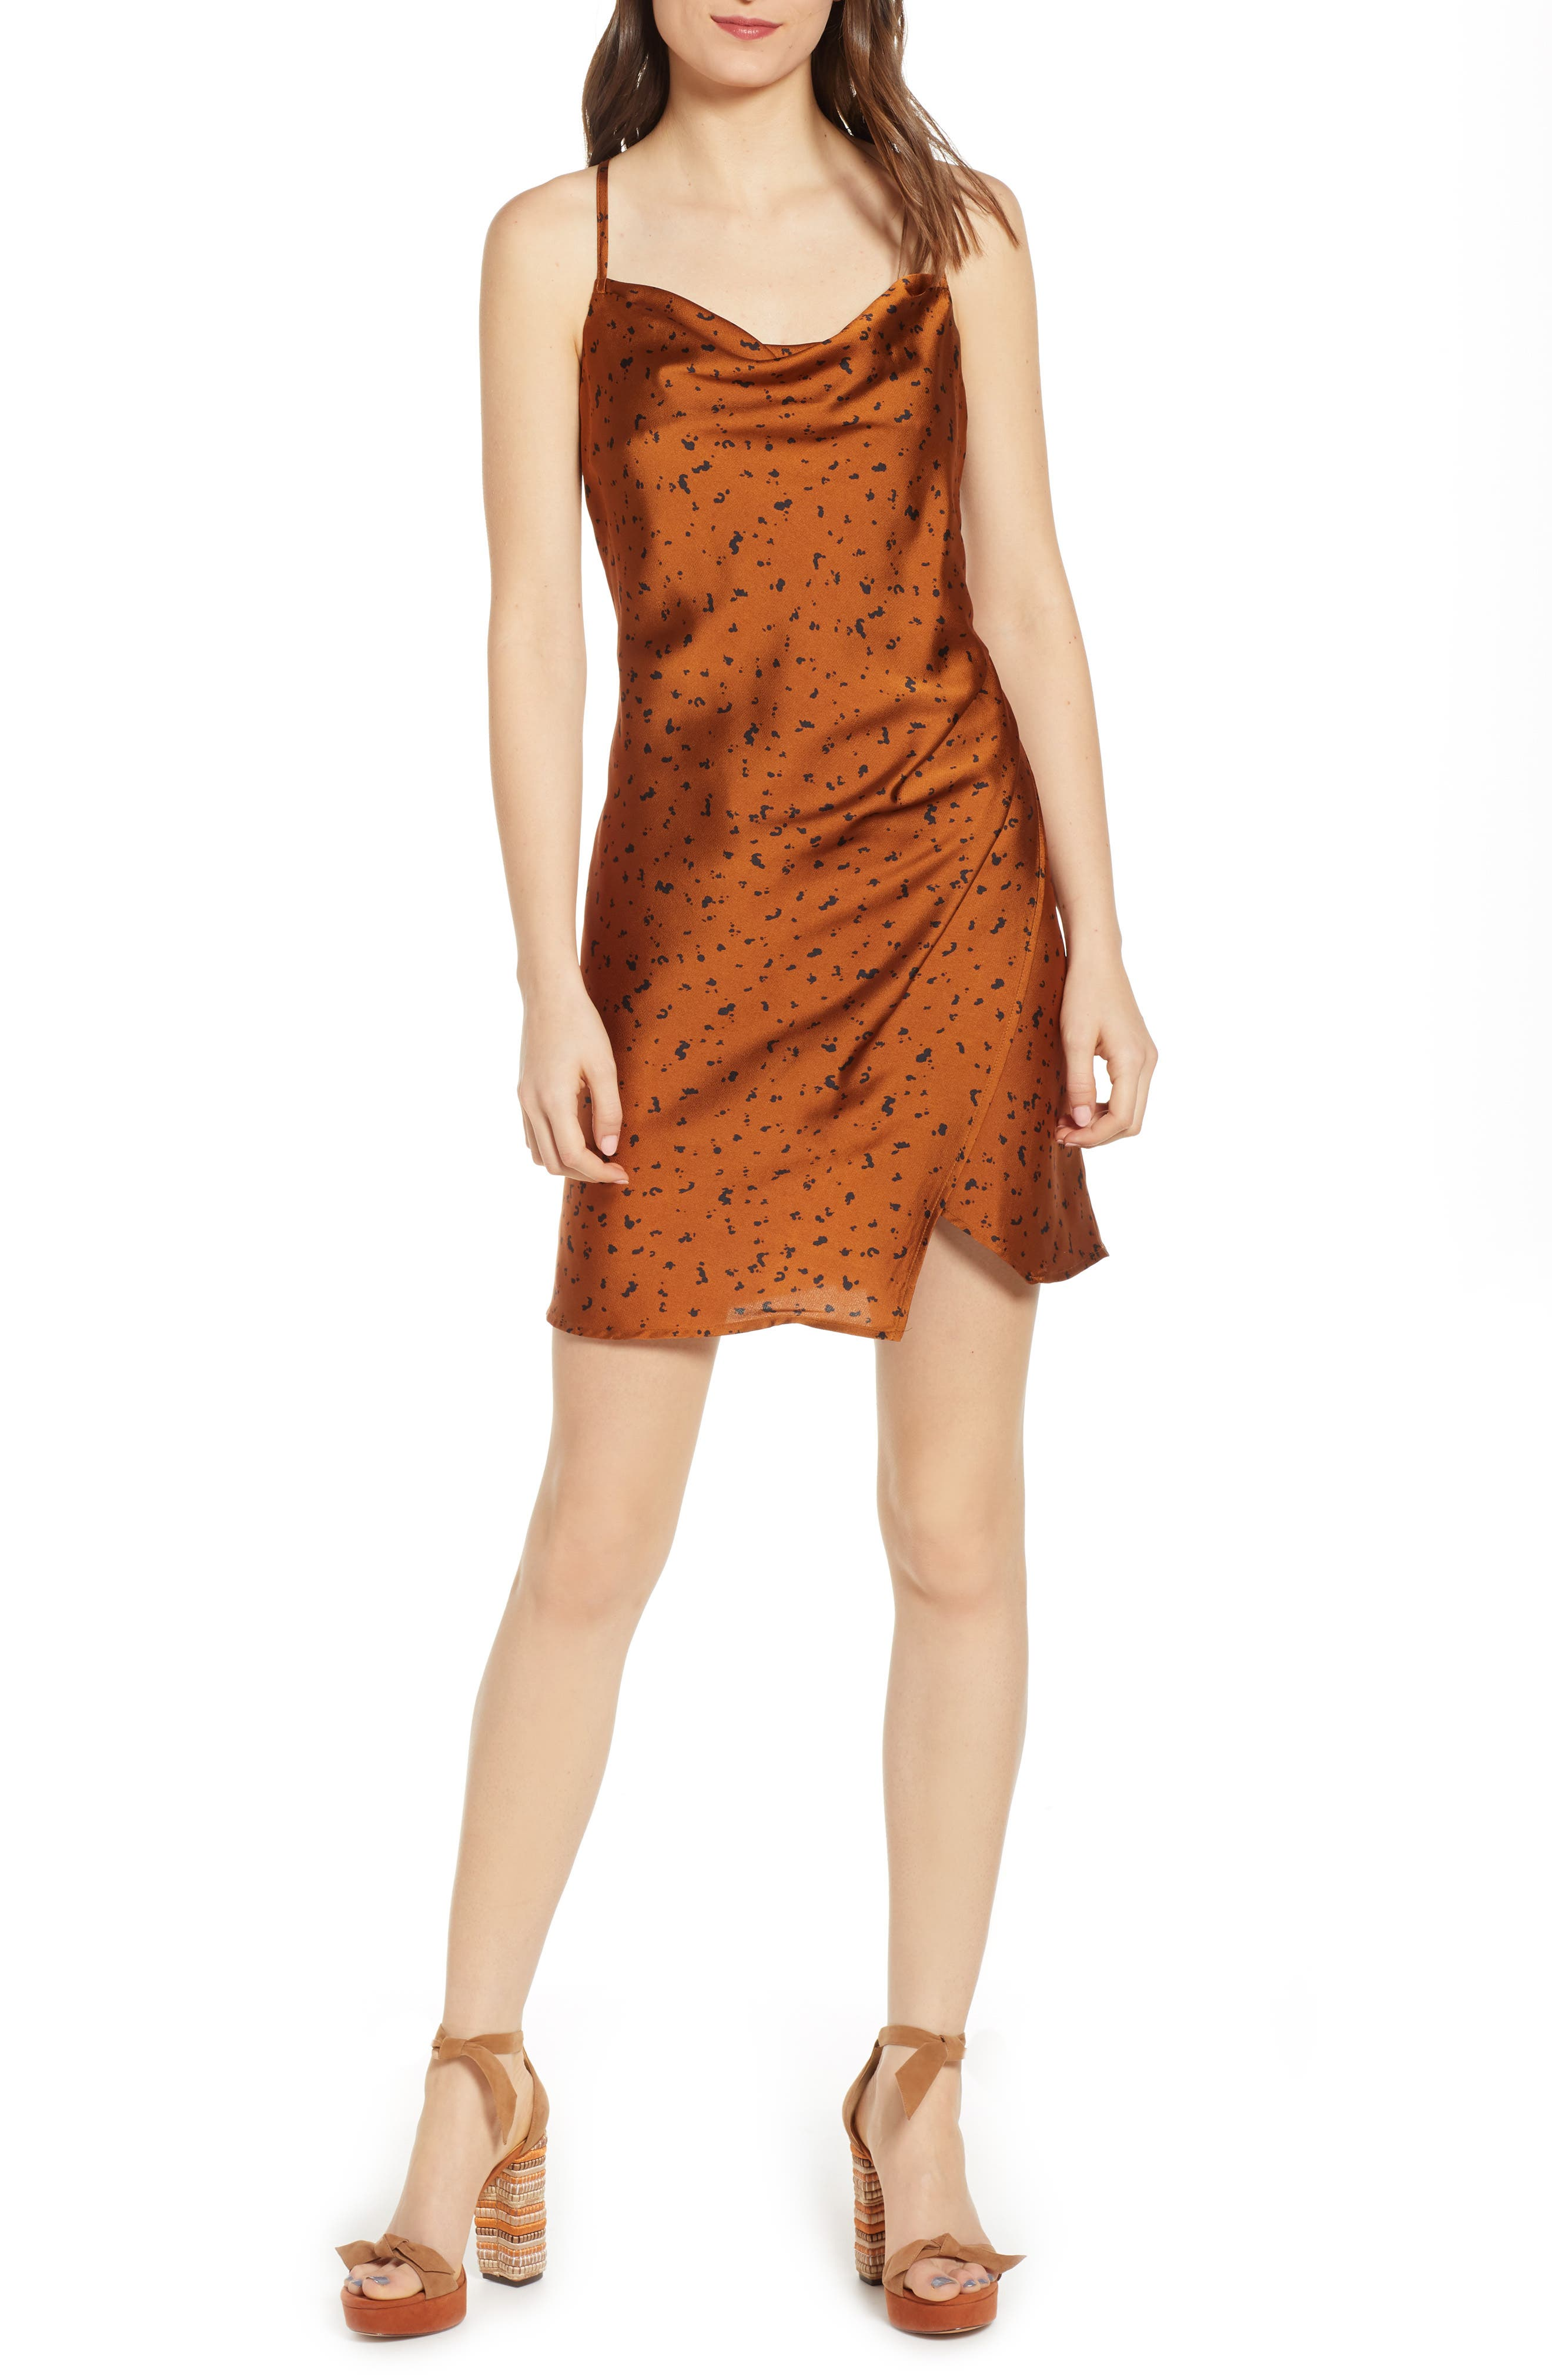 J.o.a. Animal Print Slipdress, Brown